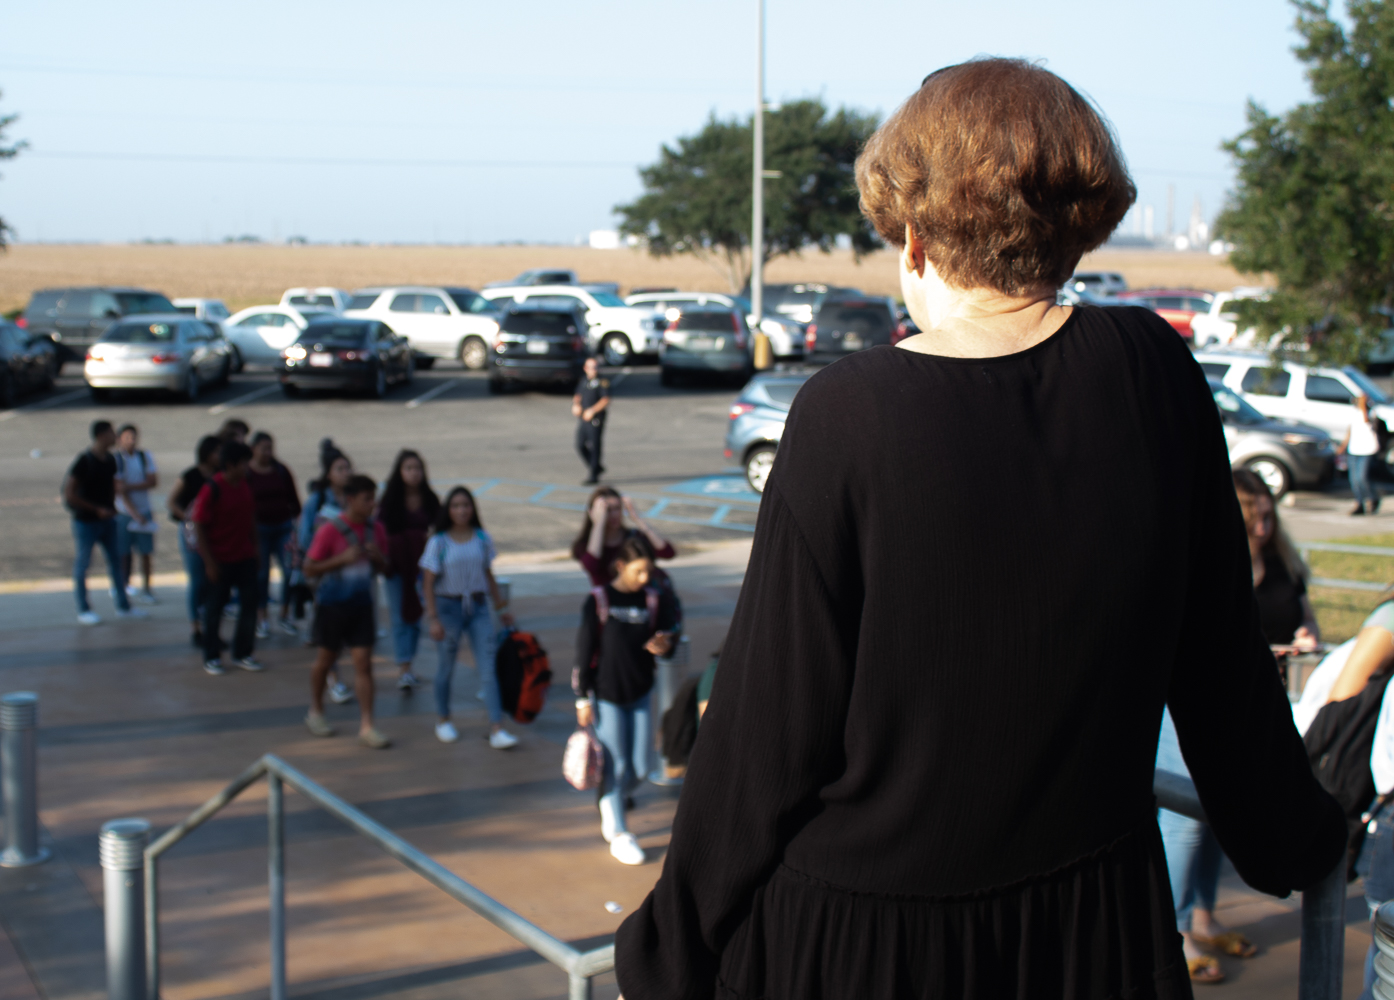 Mrs.+Birdwell+keeps+watch+as+students+wait+to+have+their+bags+checked.